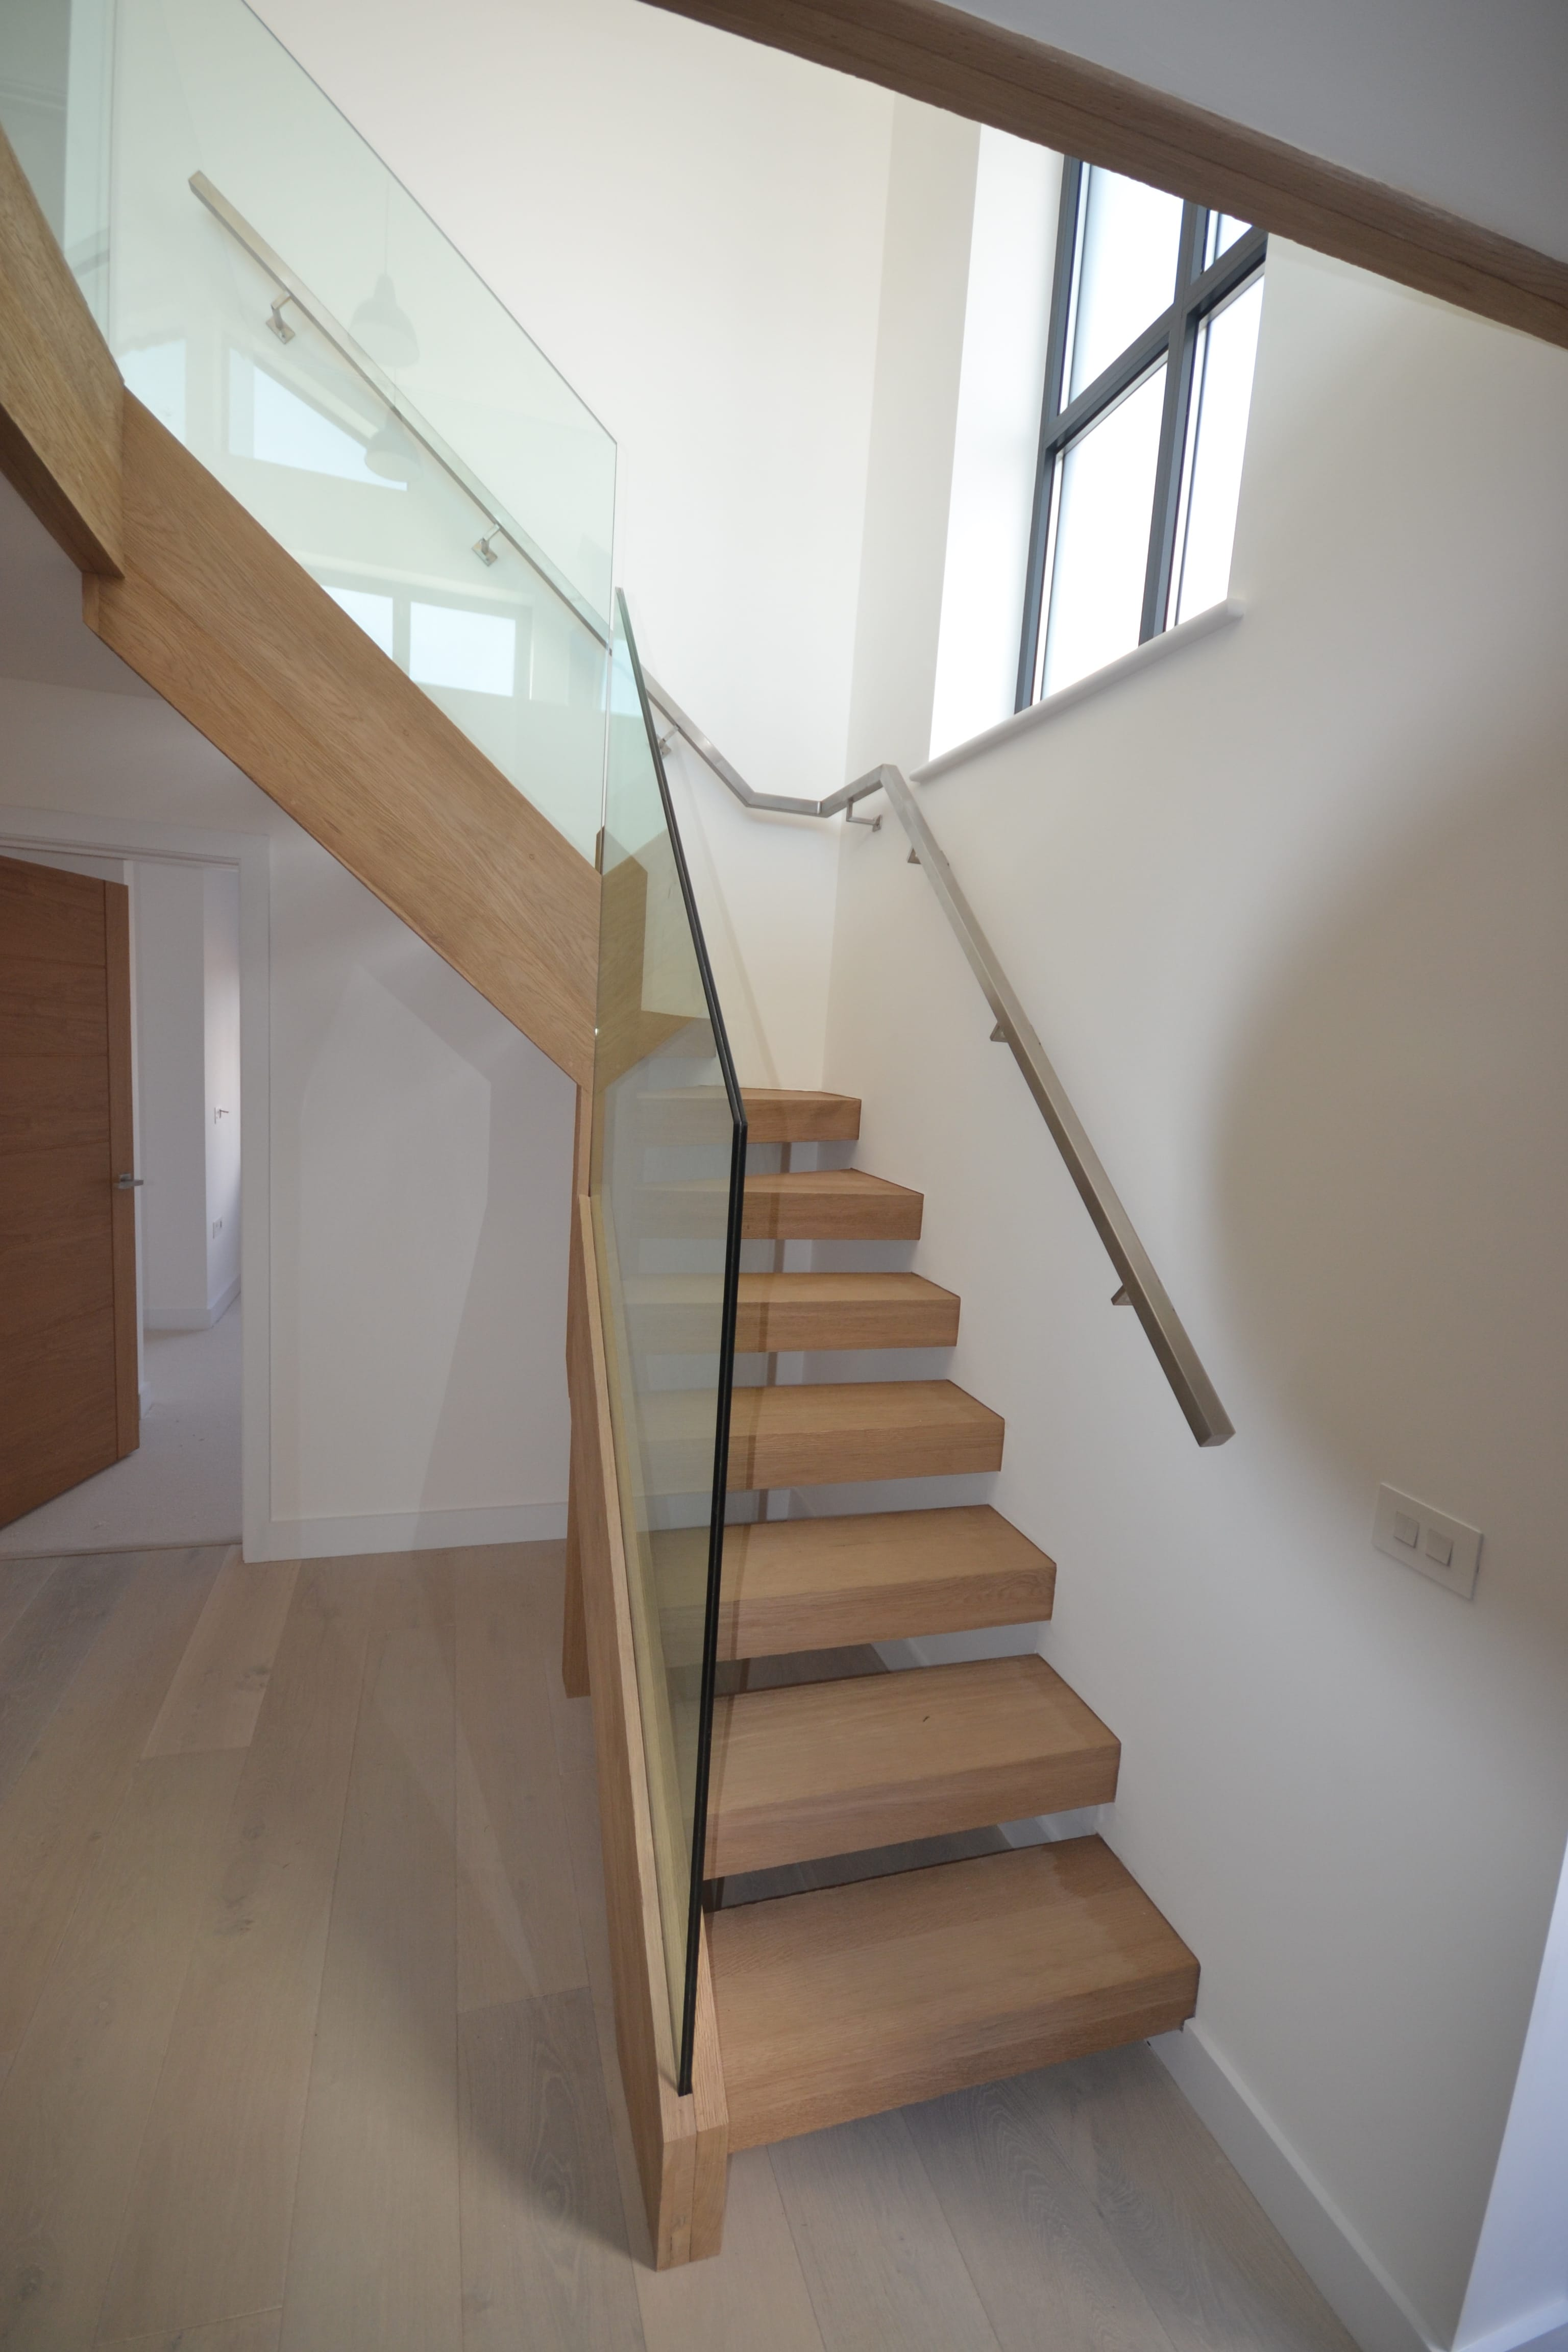 jla joinery oak and glass staircase. Black Bedroom Furniture Sets. Home Design Ideas